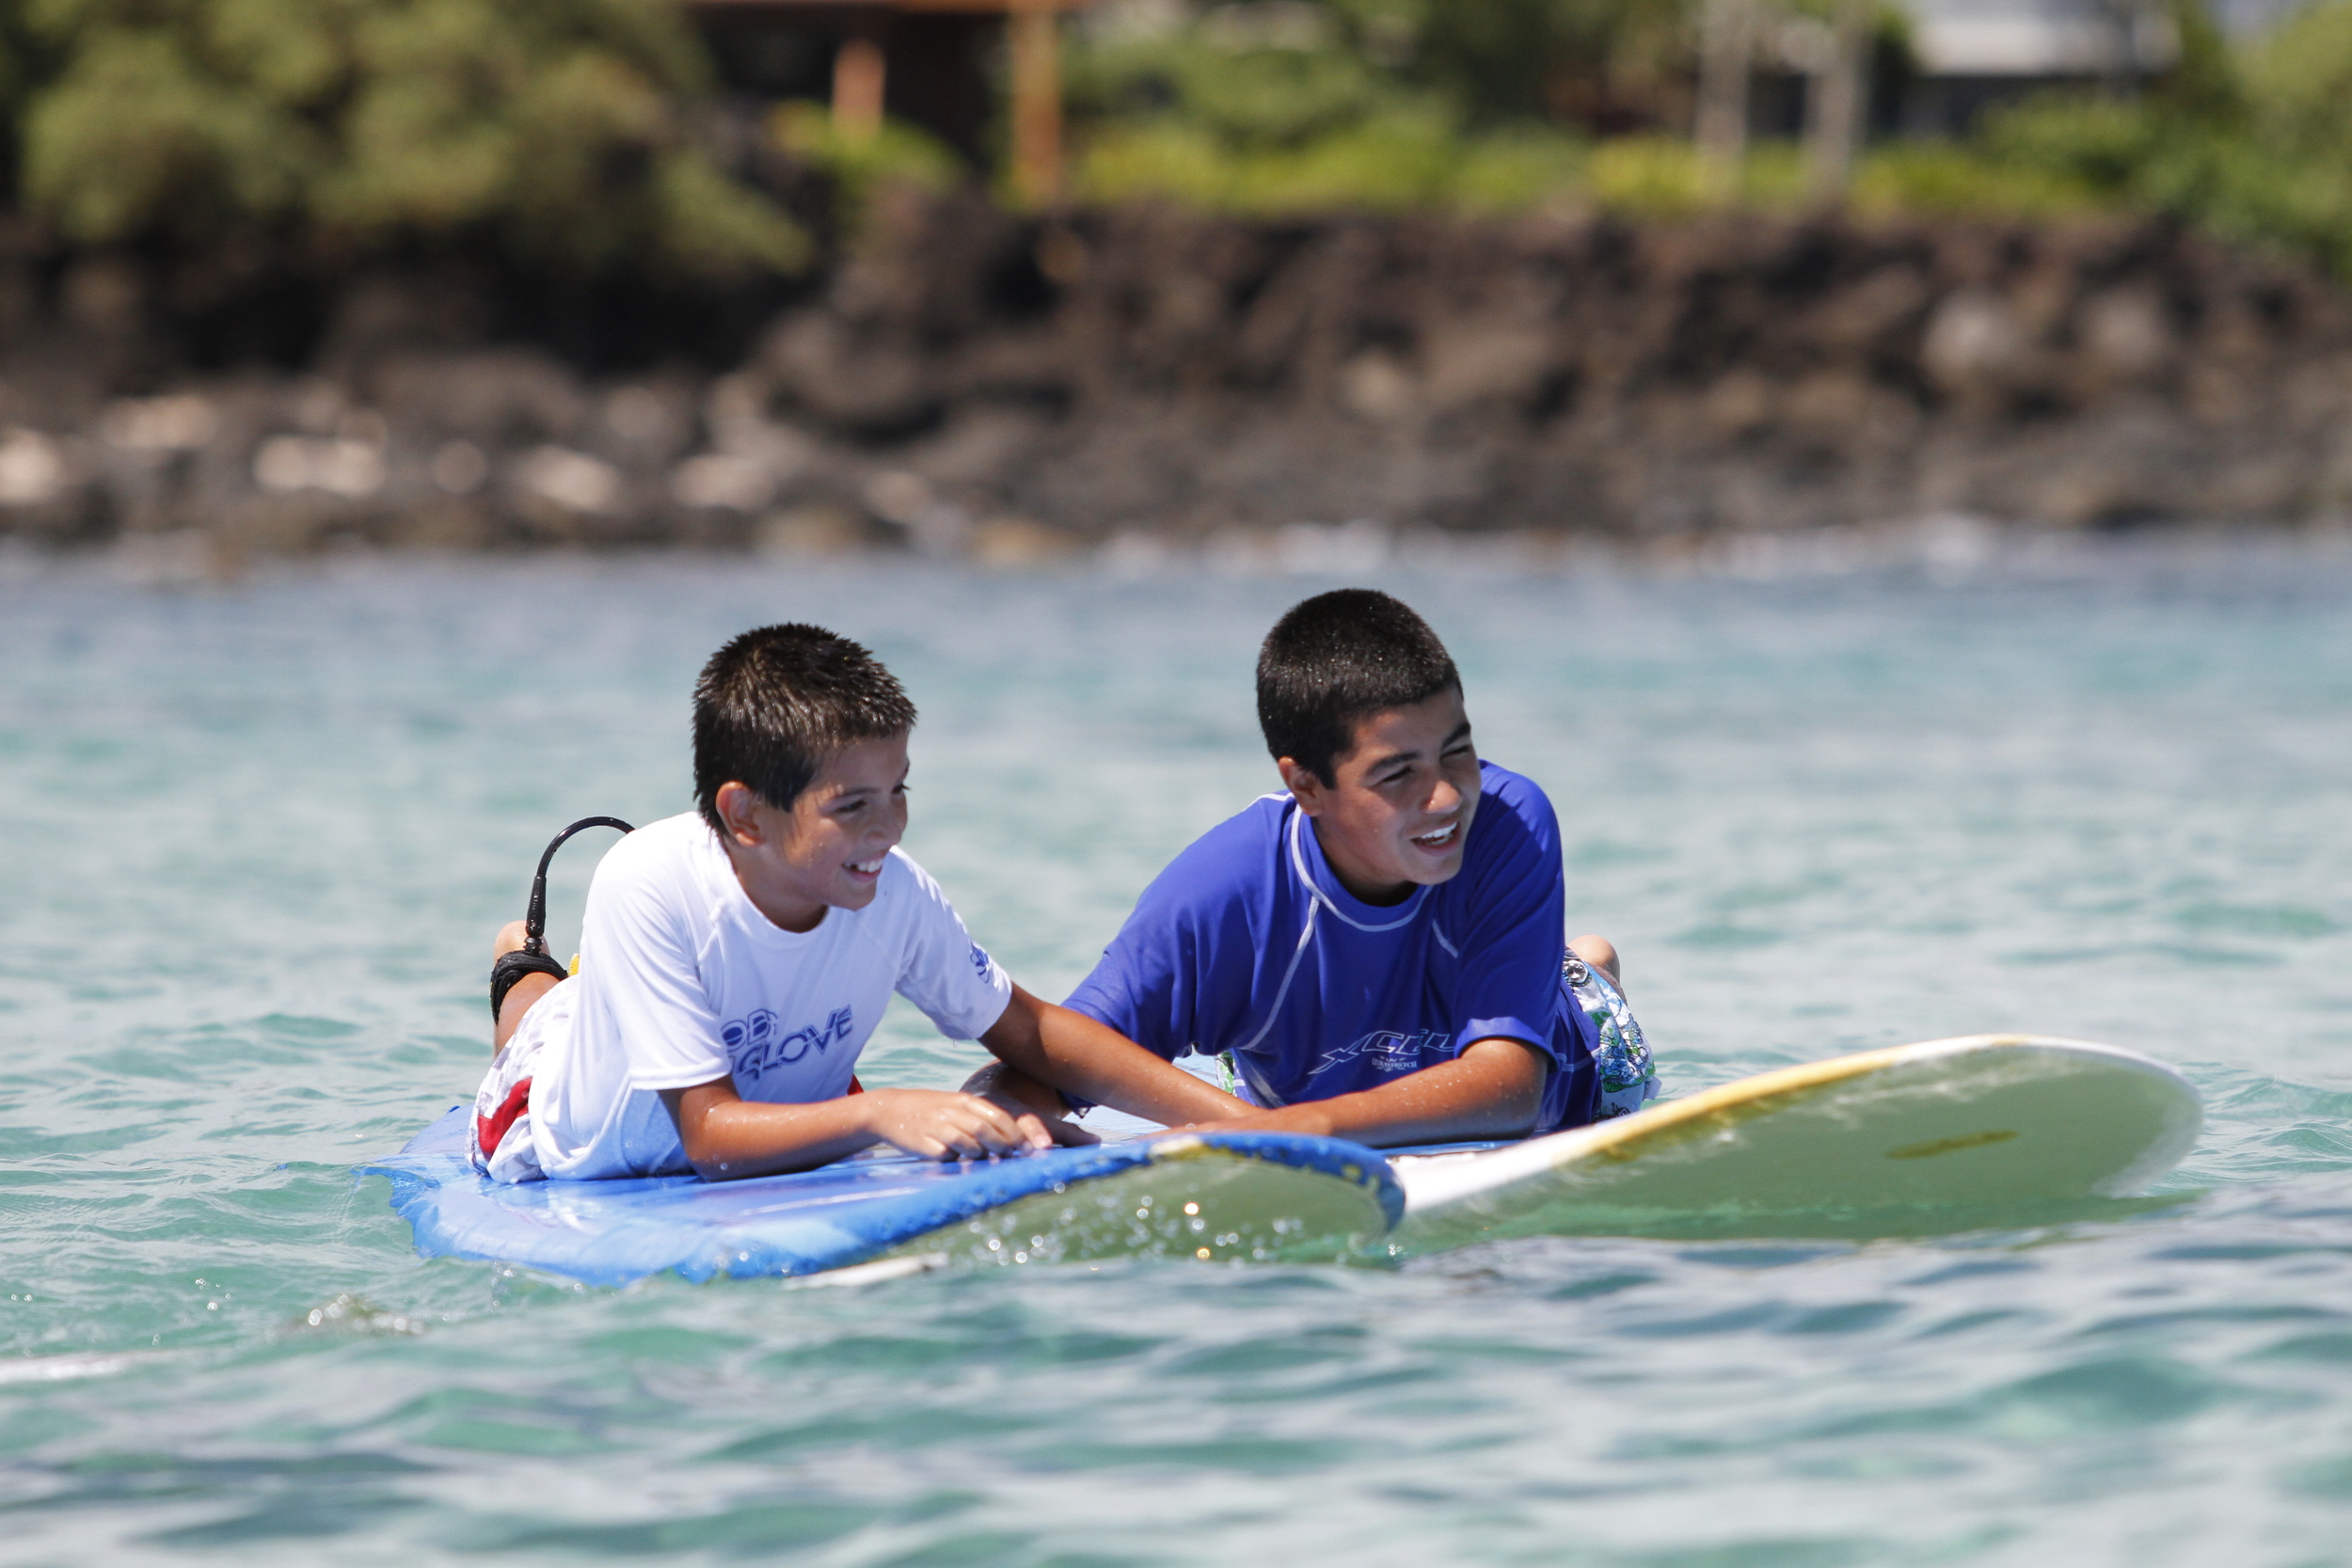 Catholic Surfing Ministries - Friends holding boards